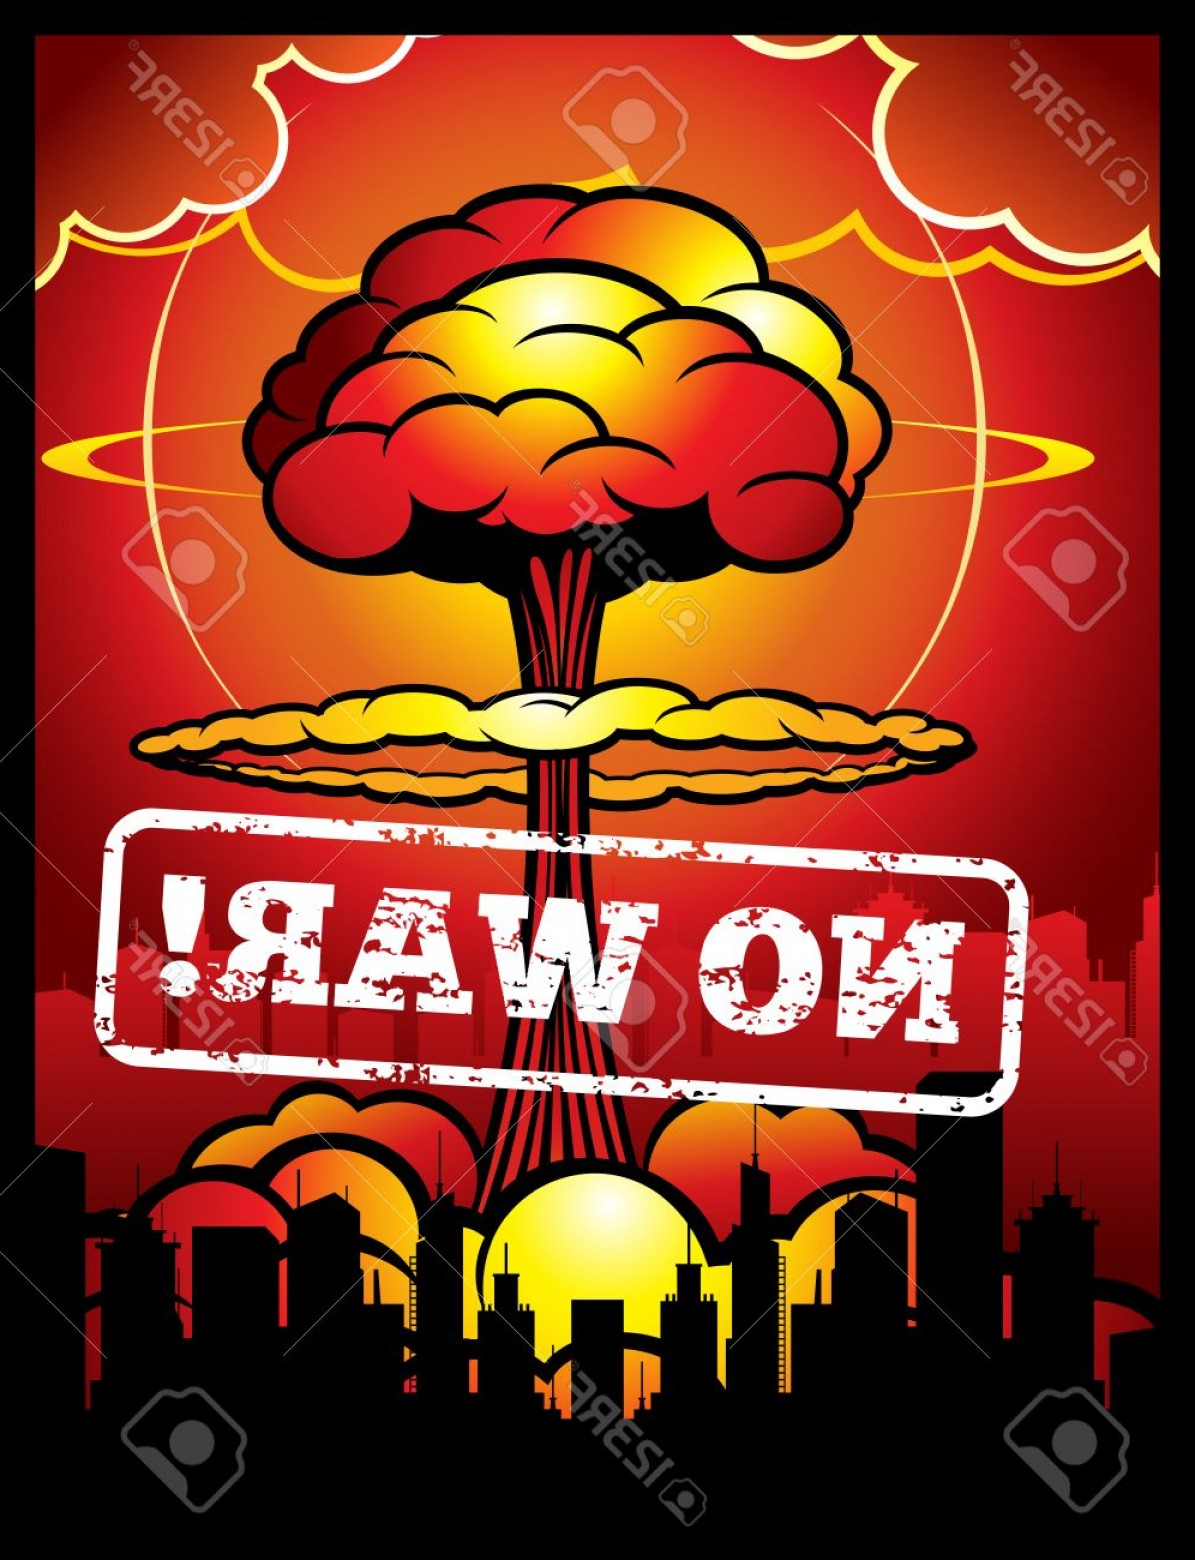 Atomic Bomb Explosion Vector: Photostock Vector Vintage No War Vector Poster With Explosion Of Atomic Bomb And Nuclear Mushroom World Armageddon Bac